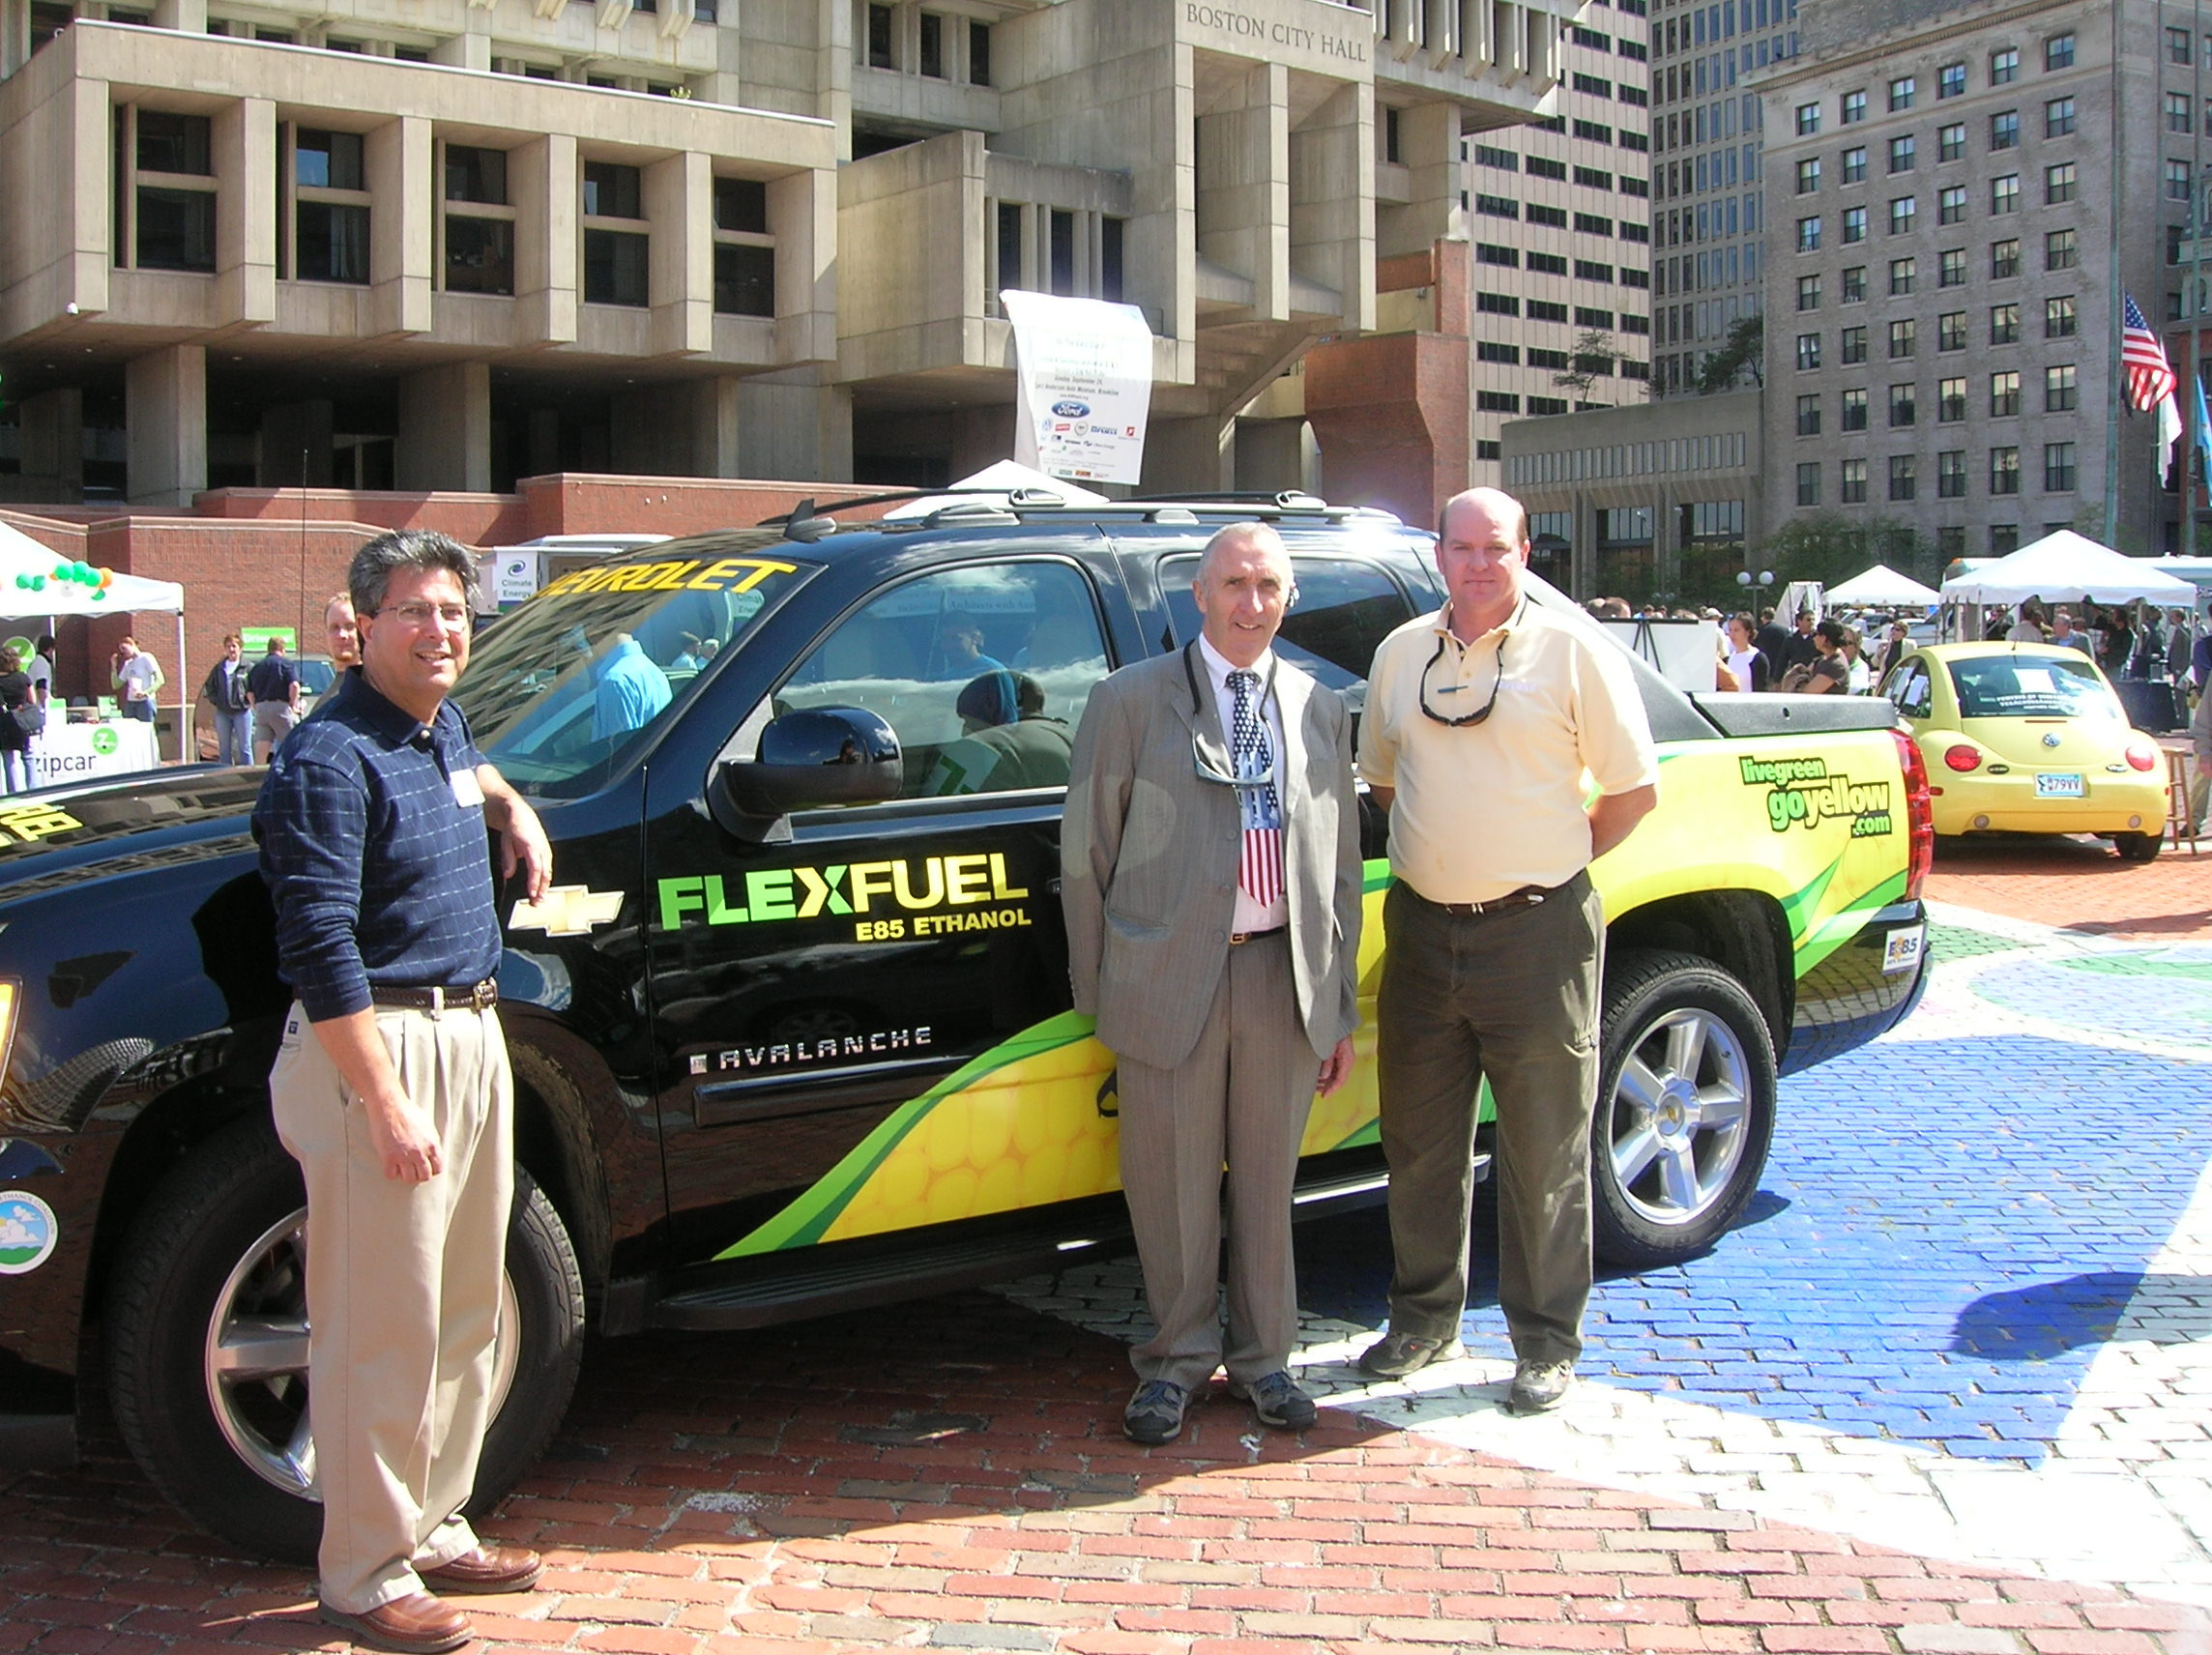 Two men standing in front of a flex fuel Chevy Avalanche